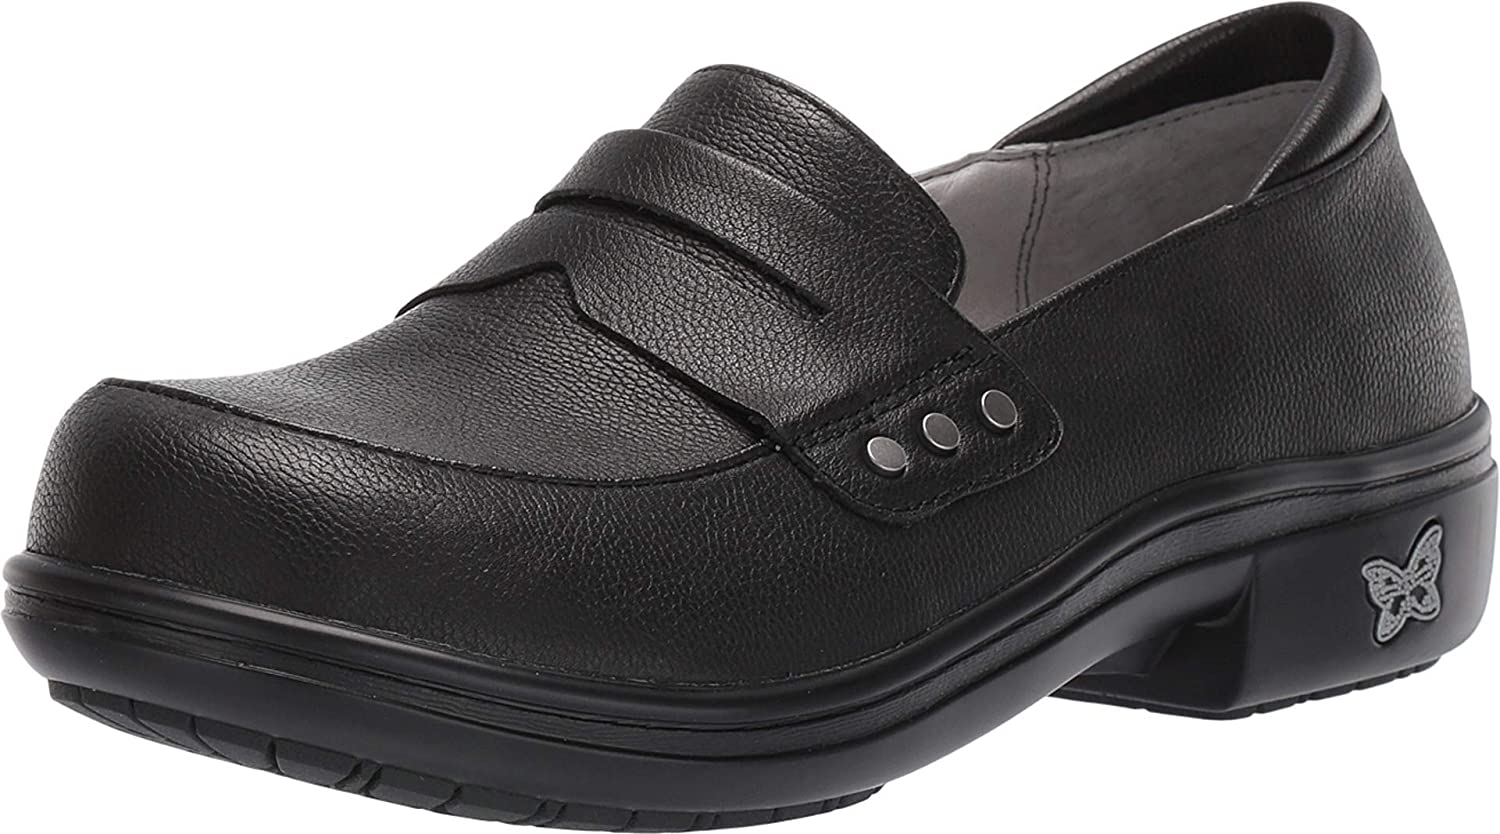 Alegria 70% OFF Outlet Women's Slip-On Max 65% OFF Taylor